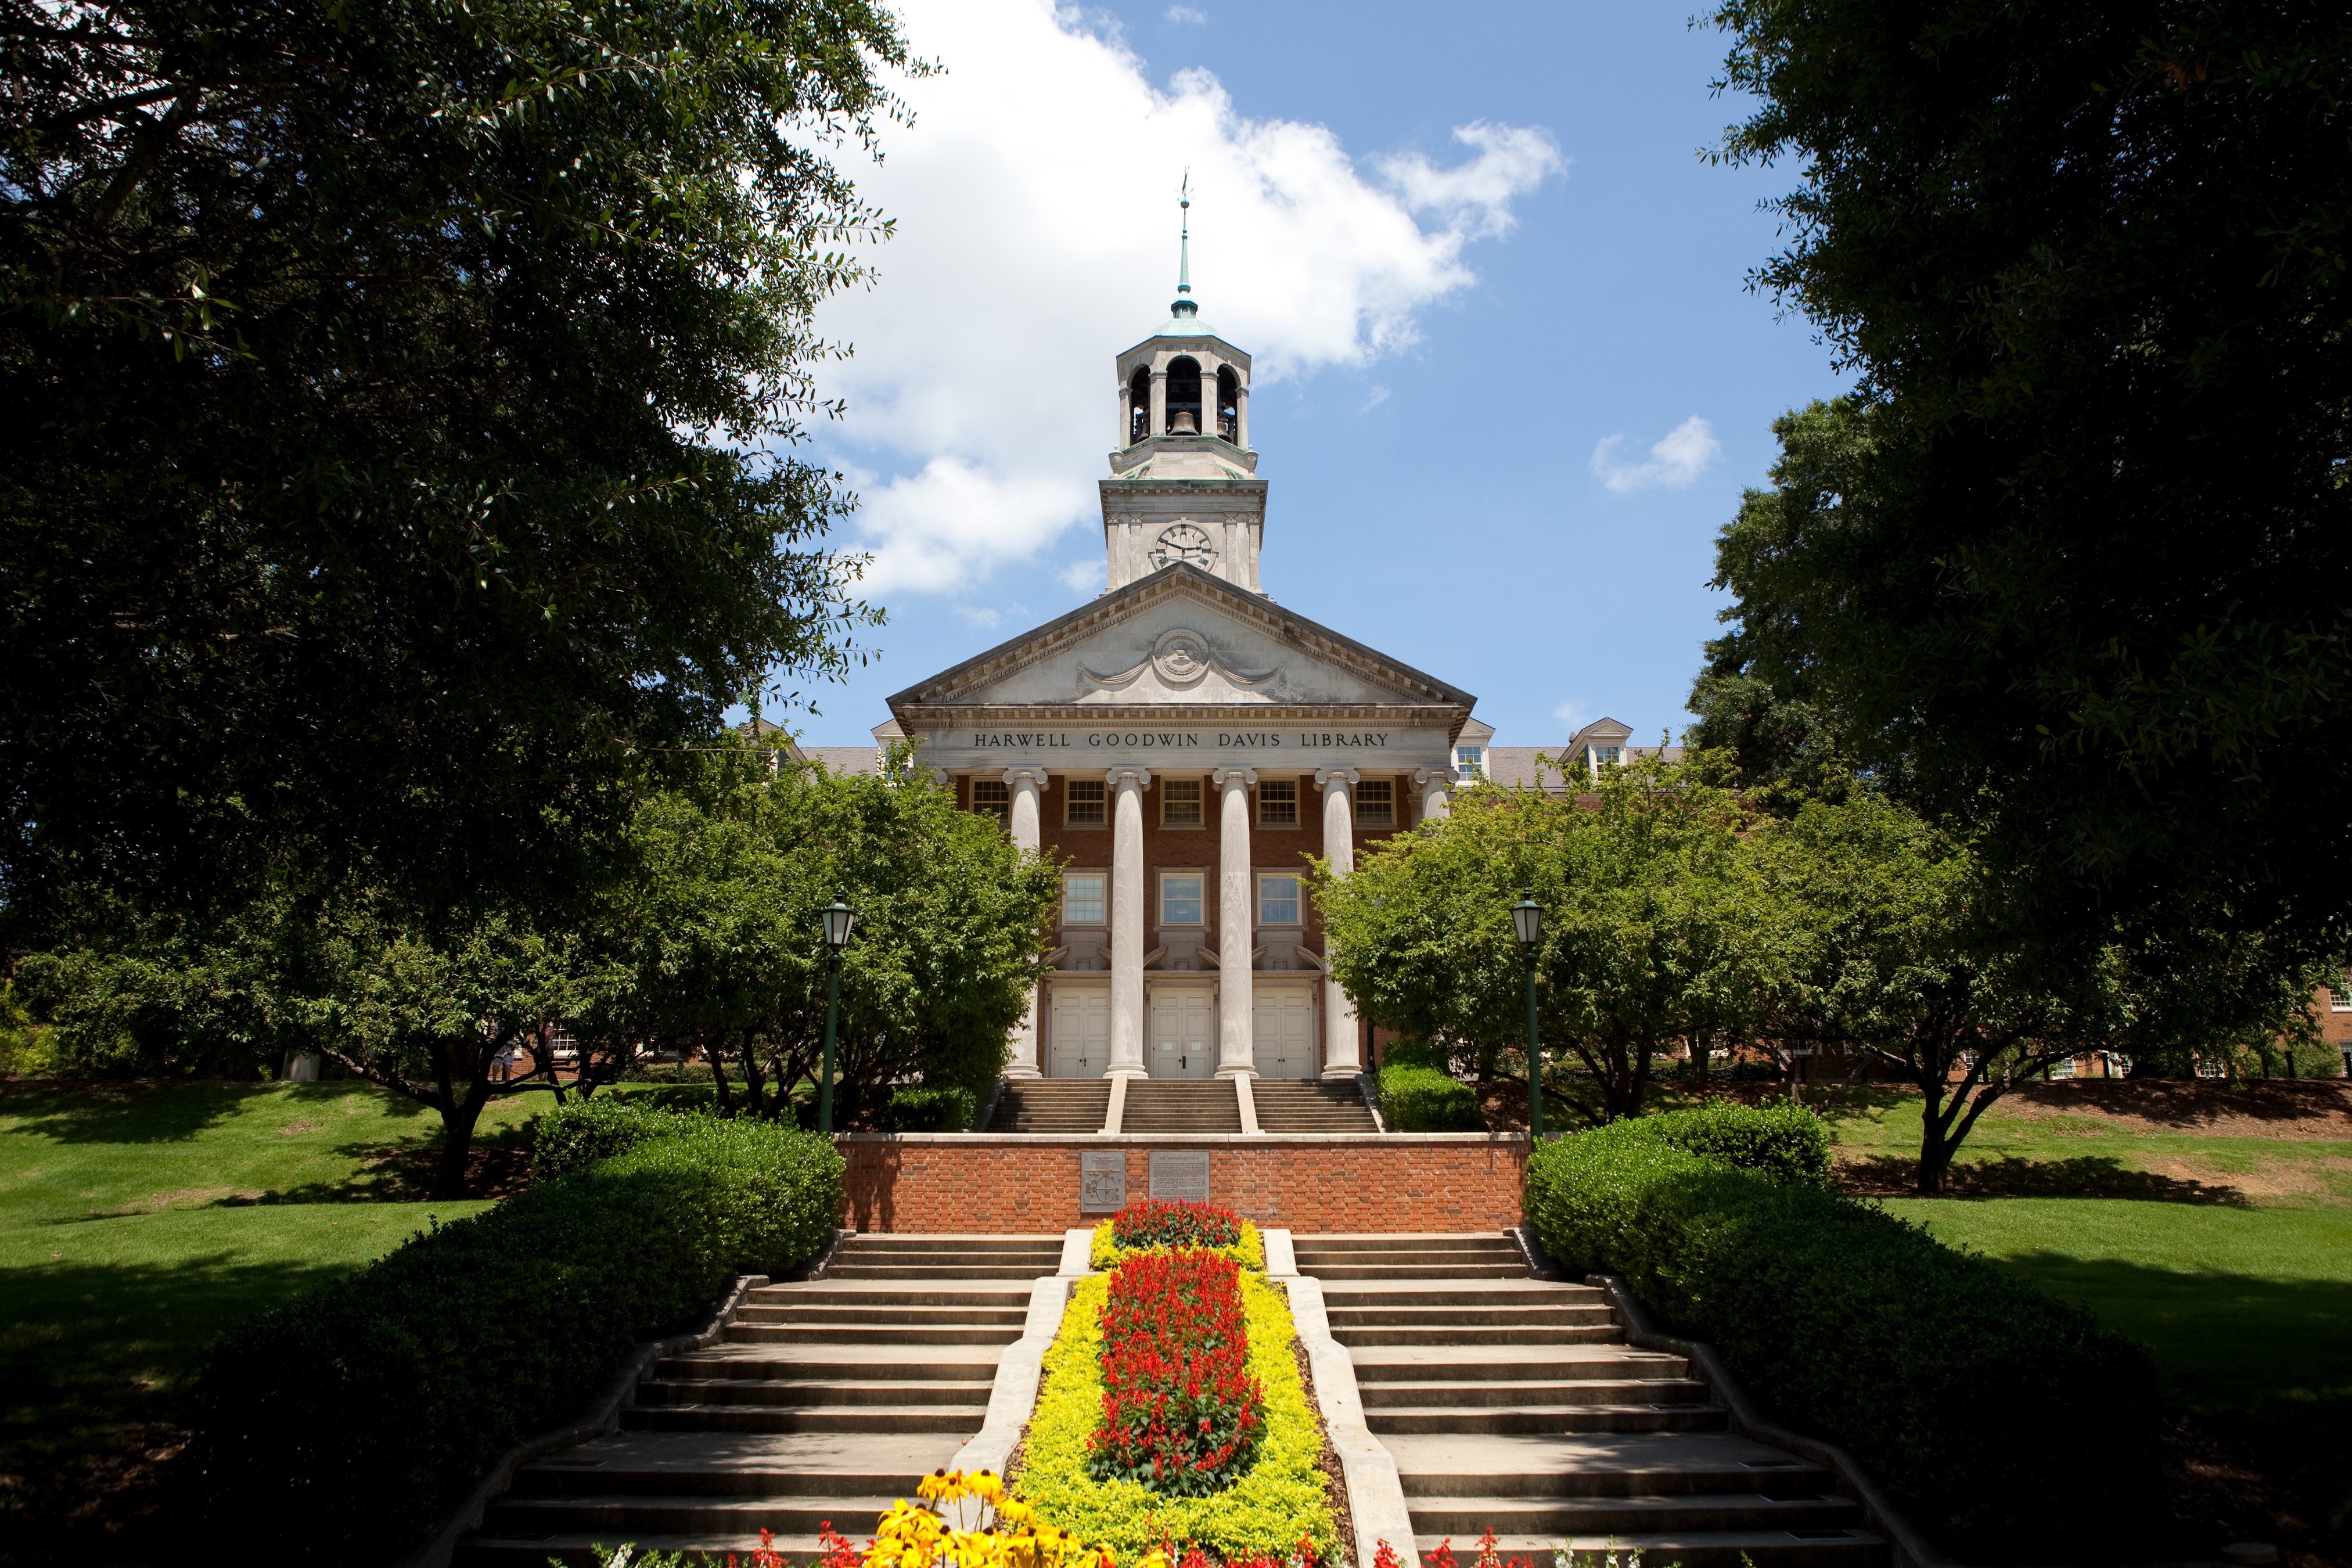 At-Samford-University-in-Alabama-a-law-professor-adopted-a-couple-of-children-from-India-only-to-determine-that-they-were-stolen-from-their-mother-in-1998